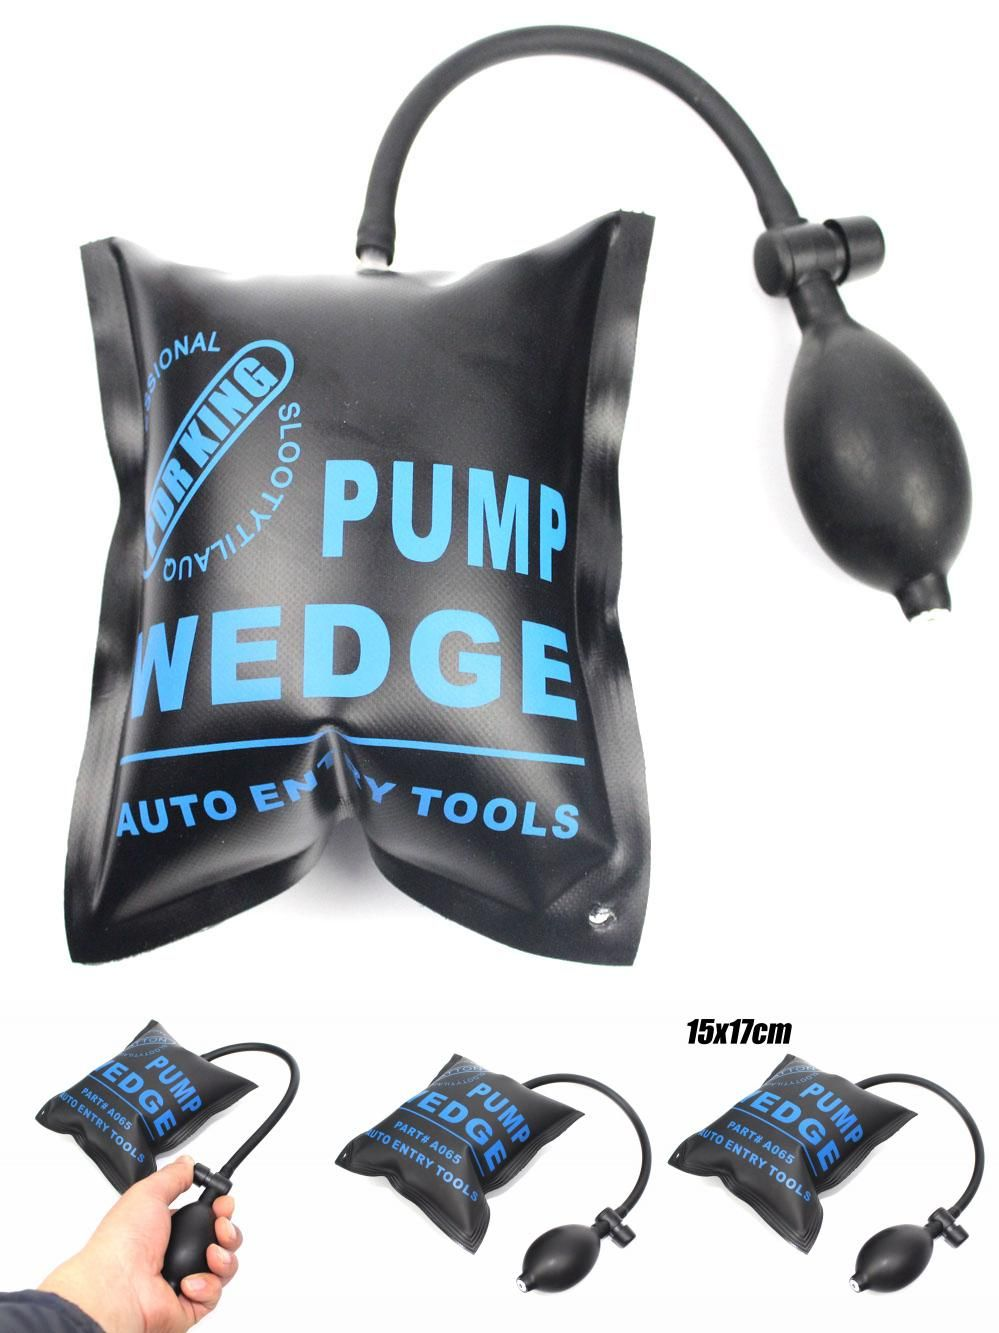 Visit To Buy Auto Entry Tools A065 Pump Wedge Locksmith Tools Auto